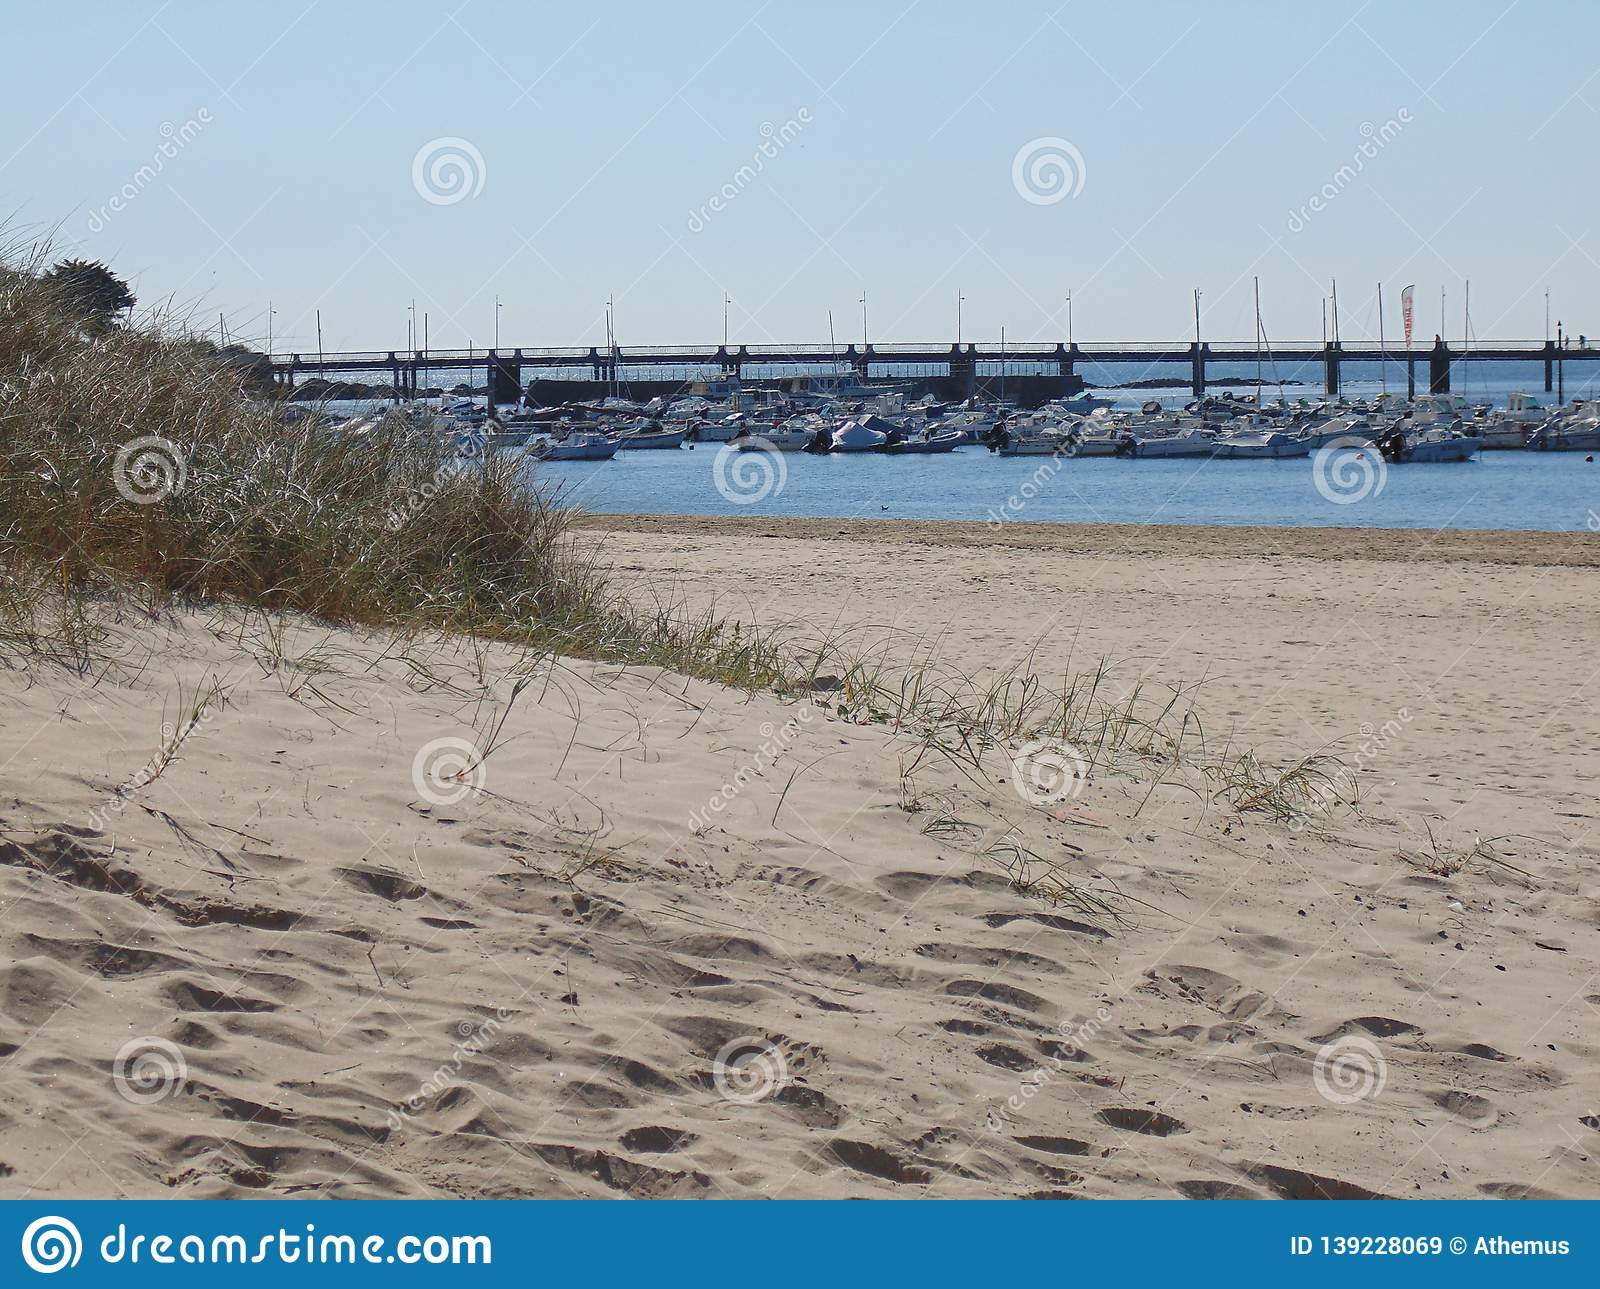 The port of Pornichet in France seen dunes of beach